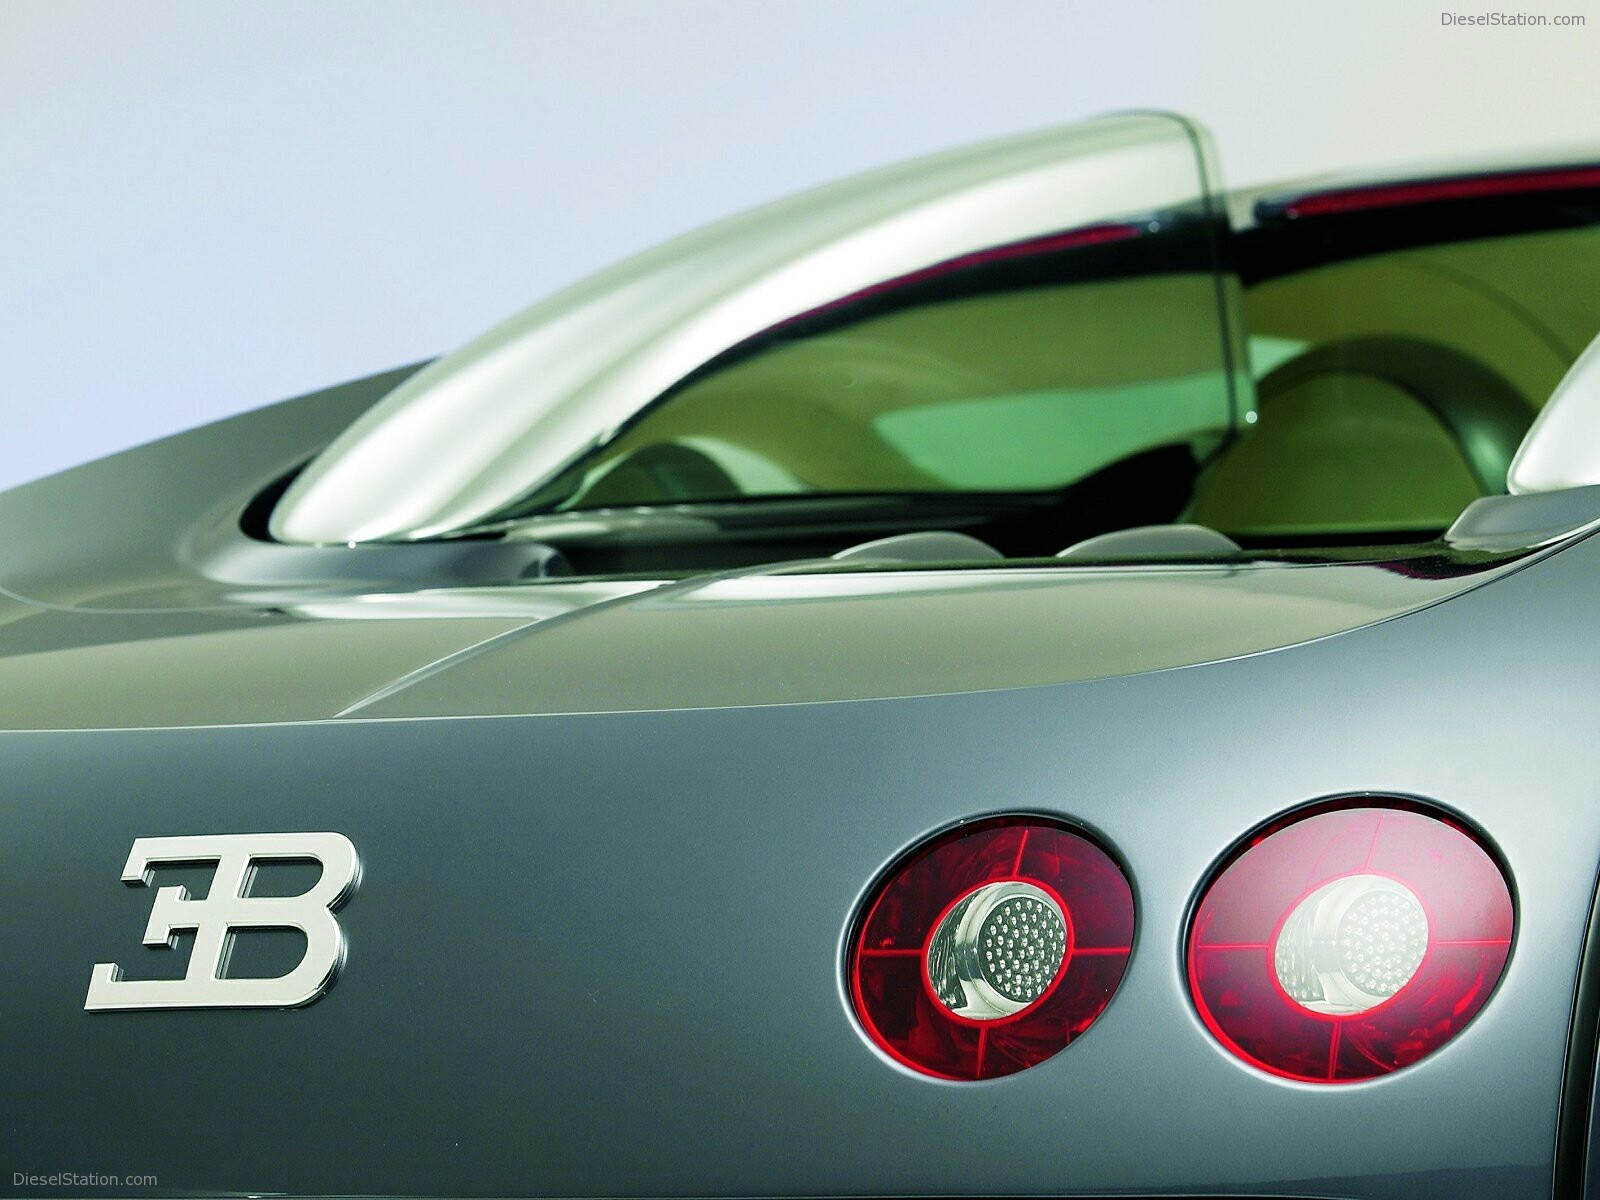 Bugatti Veyron Exotic Car Wallpapers 014 of 85 Diesel 1600x1200